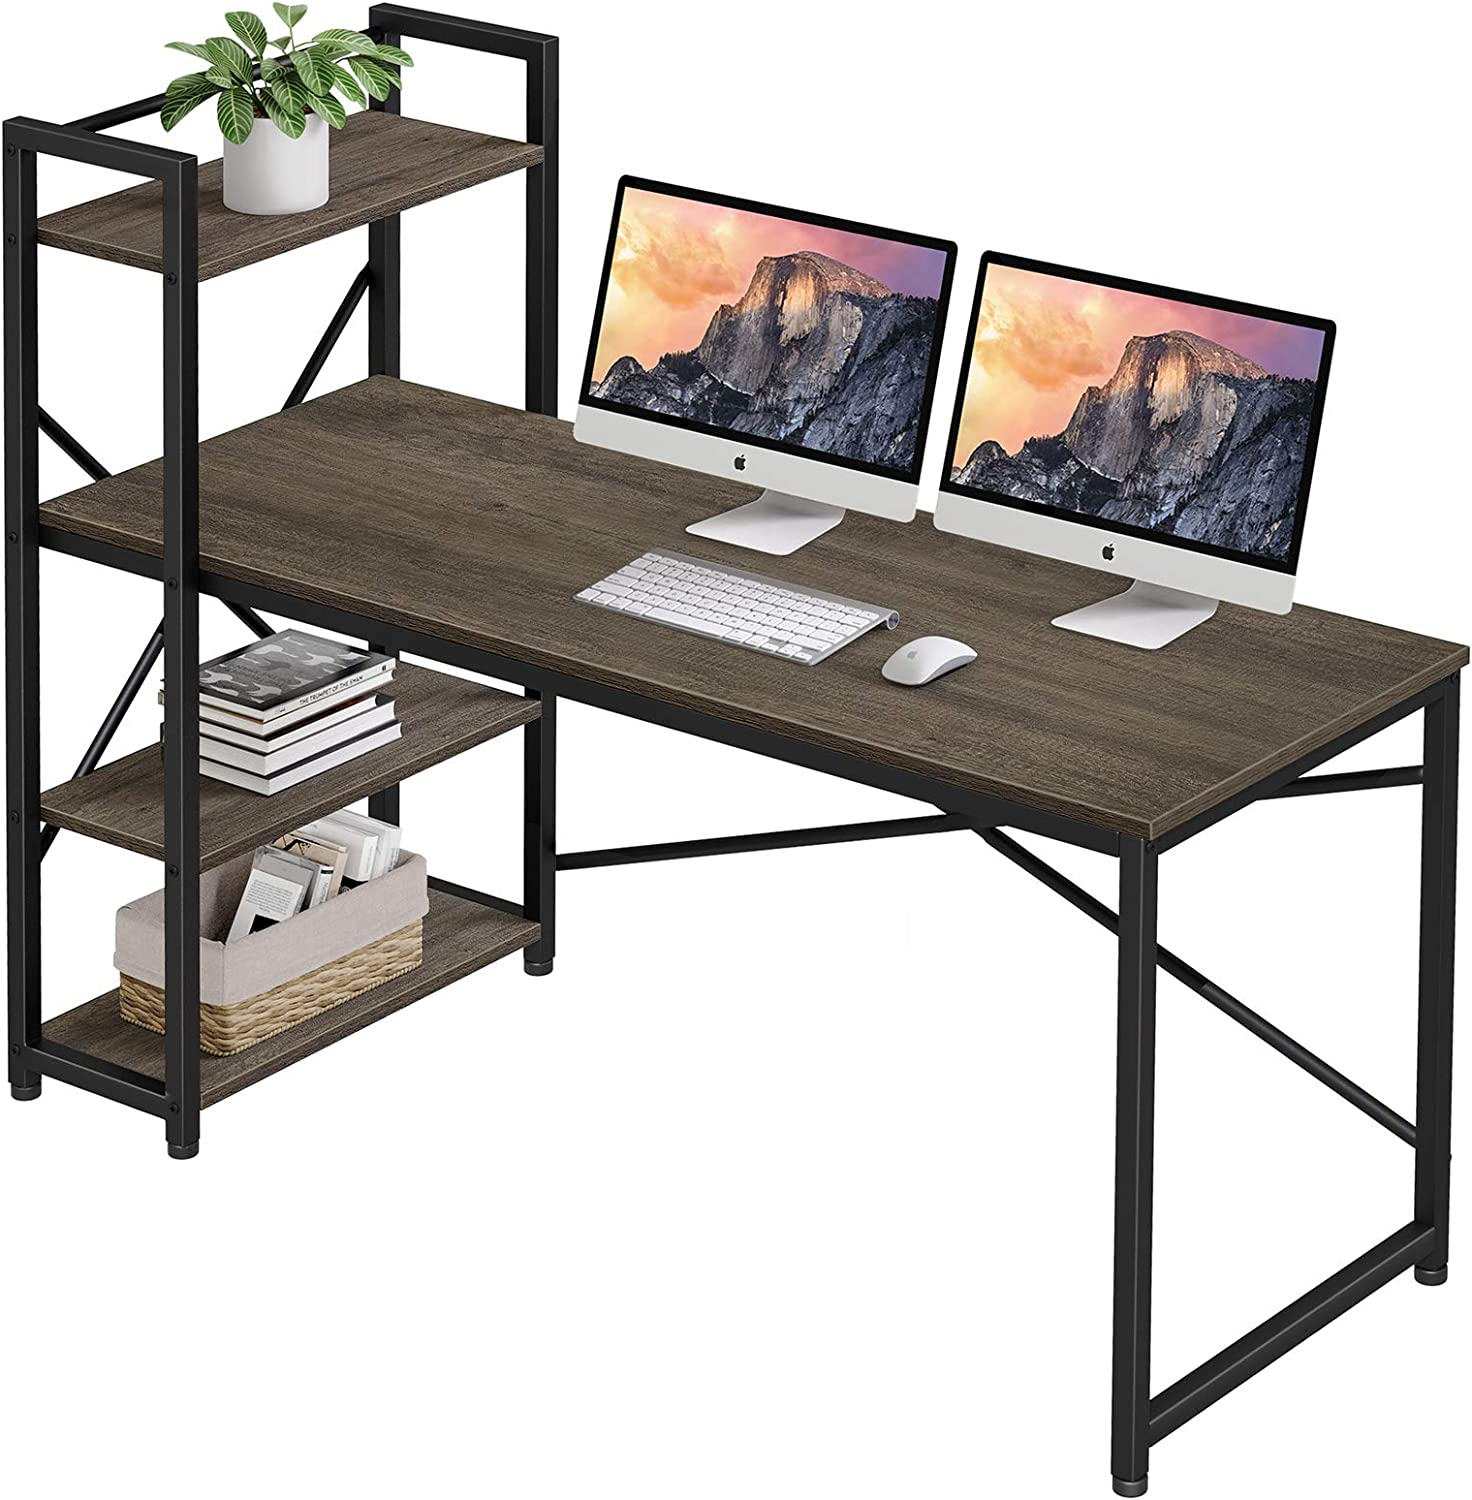 55 Inches Computer Desk with Storage Shelves, Homemaxs Home Office Desks for Small Space, Workstation, Spacious Drawing Desk with 4 Tiers Adjustable Storage for Students, Study, Writing